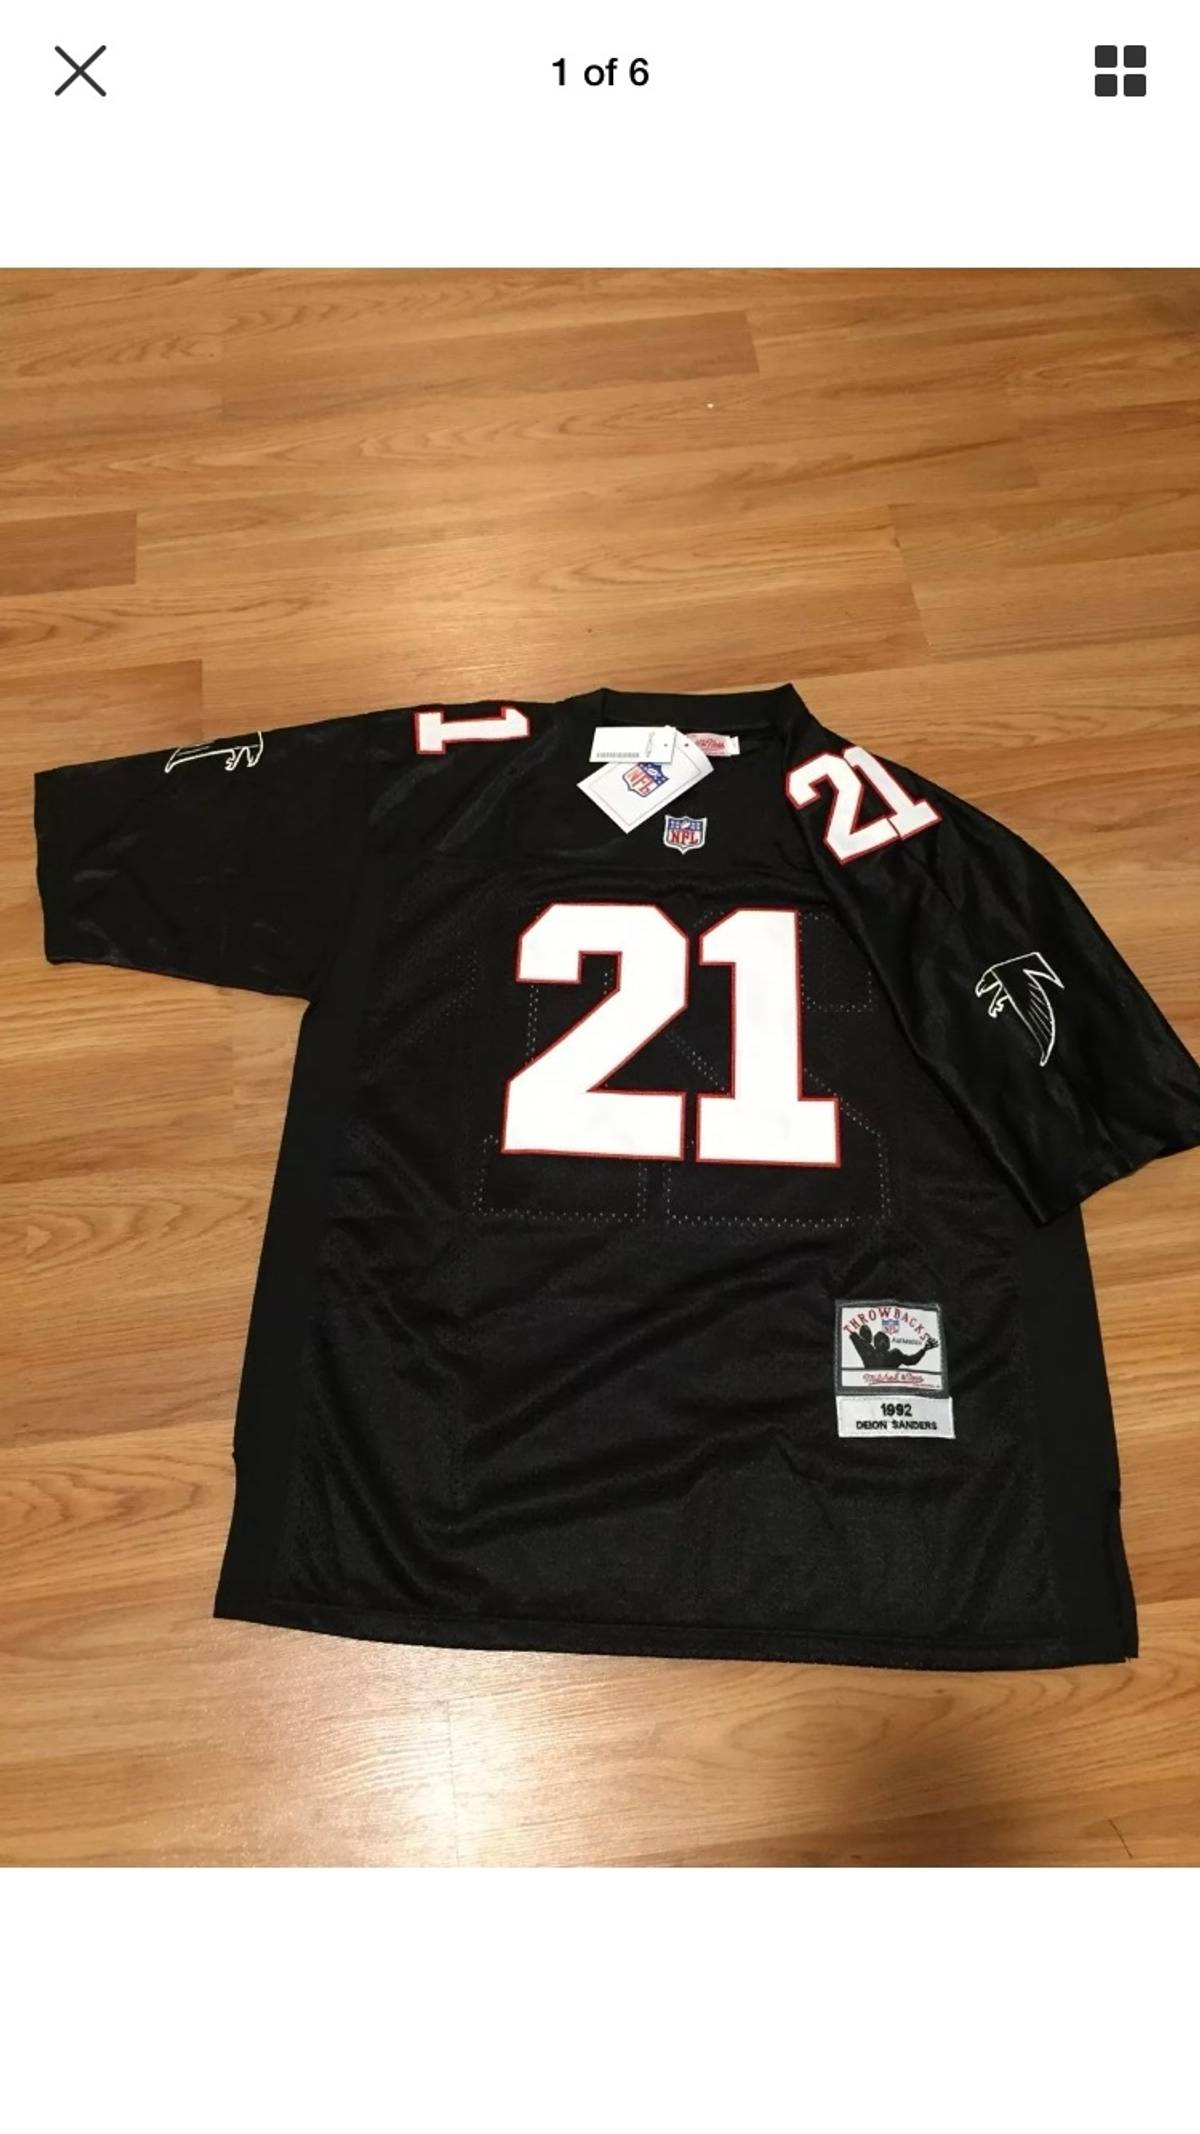 finest selection 7cff0 6c064 Mitchell & Ness × Nfl Deion Sanders Size L $126